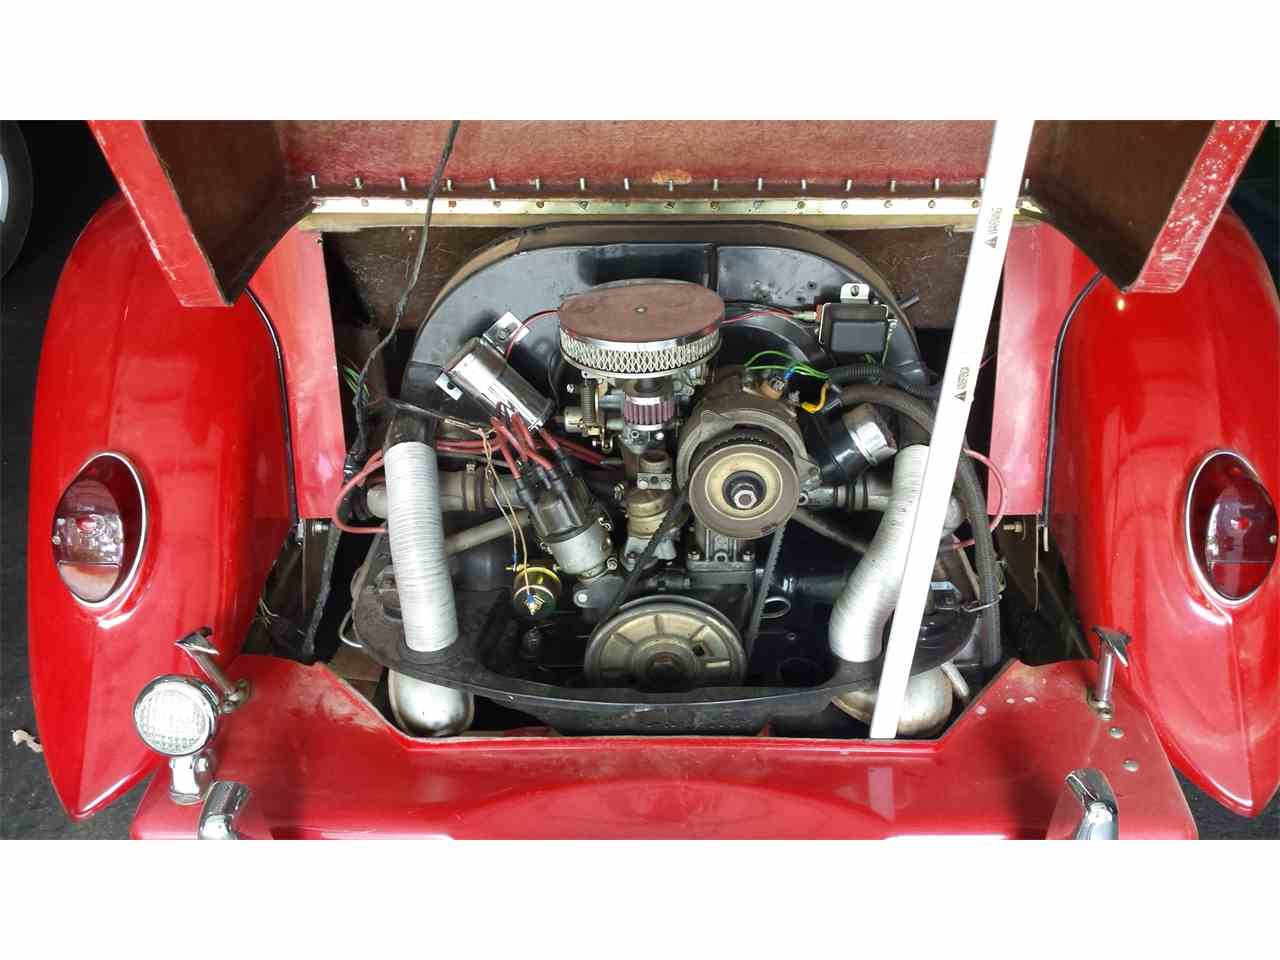 Large Picture of 1952 MG TD located in California - $9,999.00 Offered by a Private Seller - IR3X